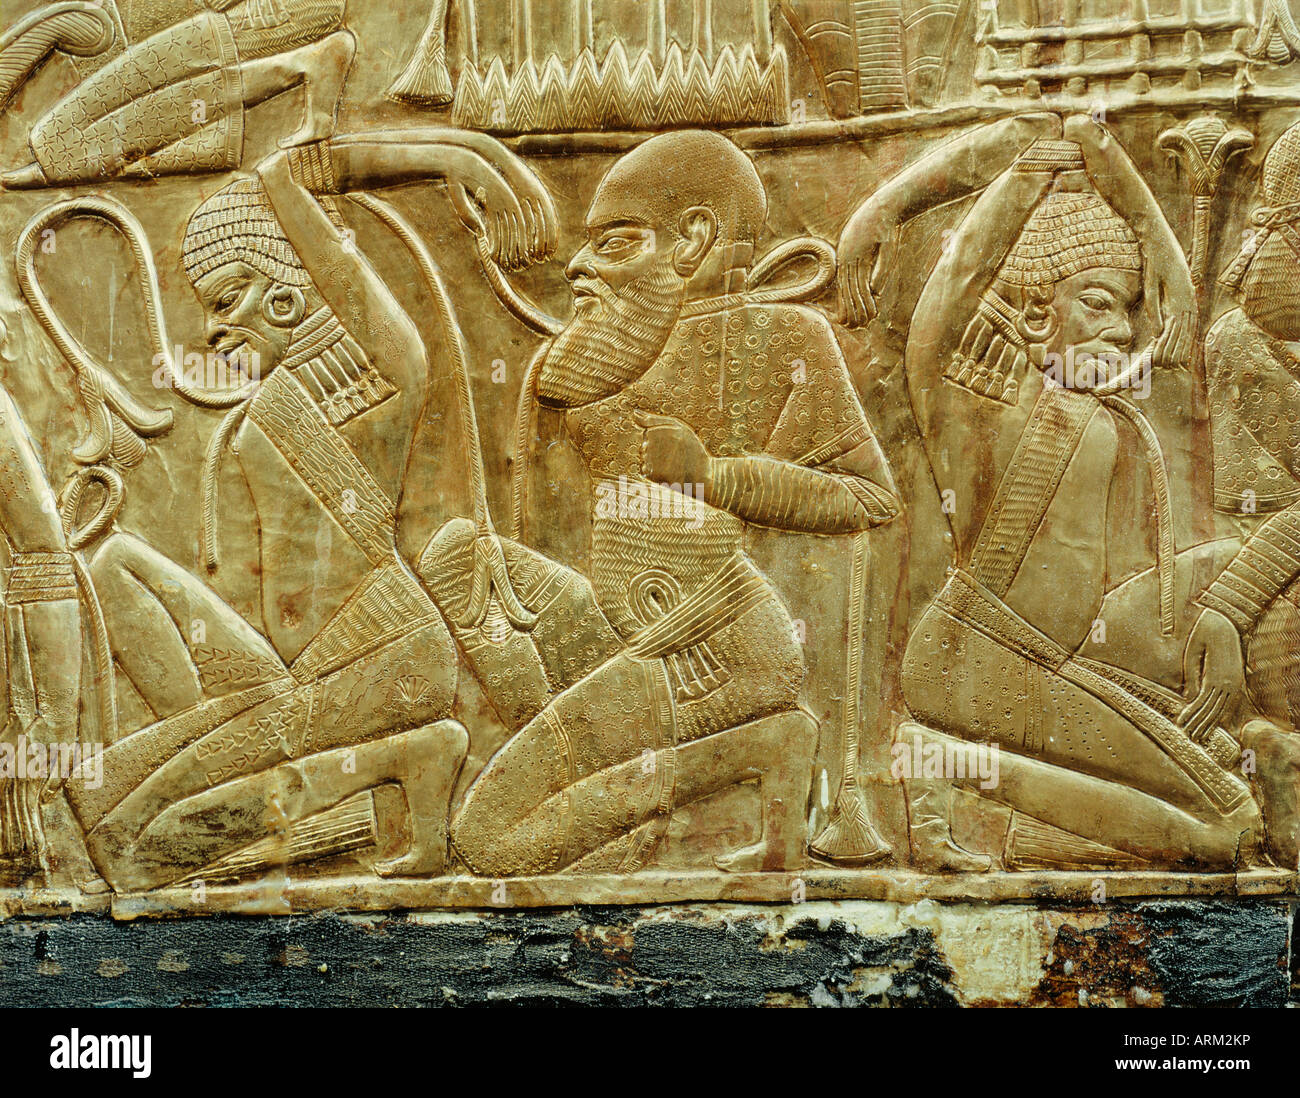 Detail from a state chariot showing the vanquished and enslaved enemies of Egypt, from the tomb of the pharaoh Tutankhamun - Stock Image